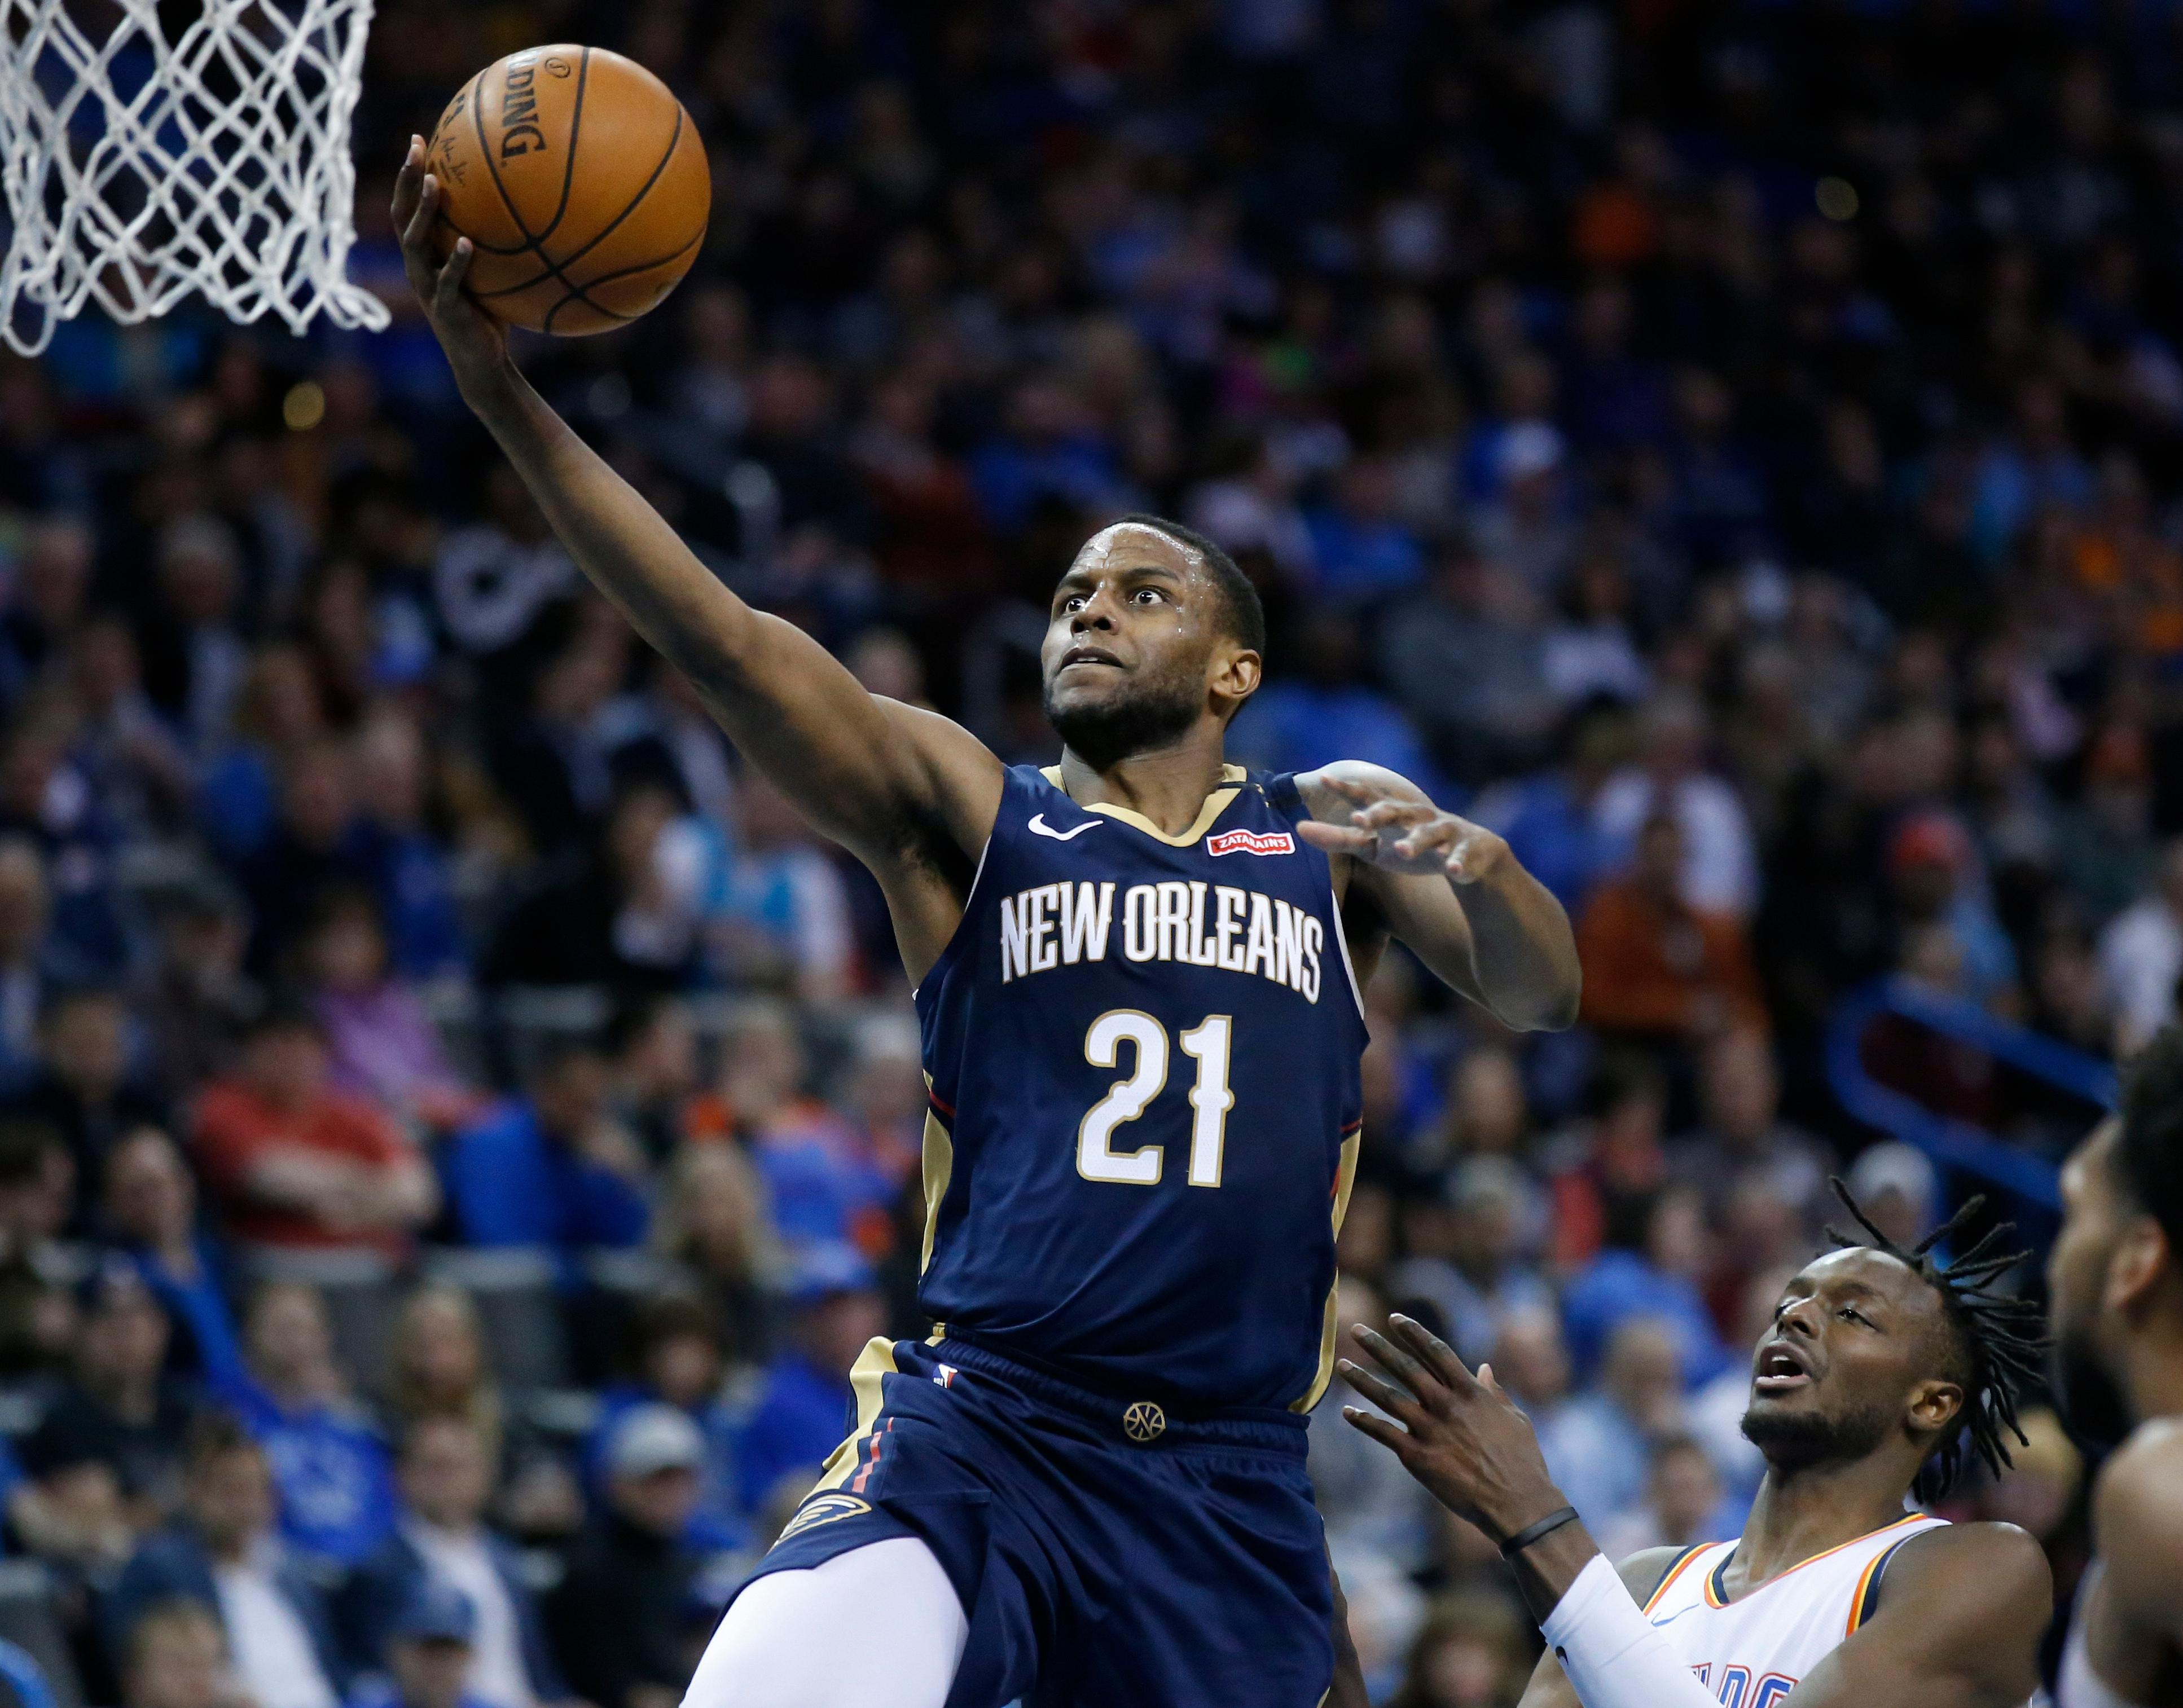 New Orleans Pelicans forward Darius Miller shoots in front of Oklahoma City Thunder forward Jerami Grant, right, during the first half of an NBA basketball game in Oklahoma City, Thursday, Jan. 24, 2019. (AP Photo/Sue Ogrocki)